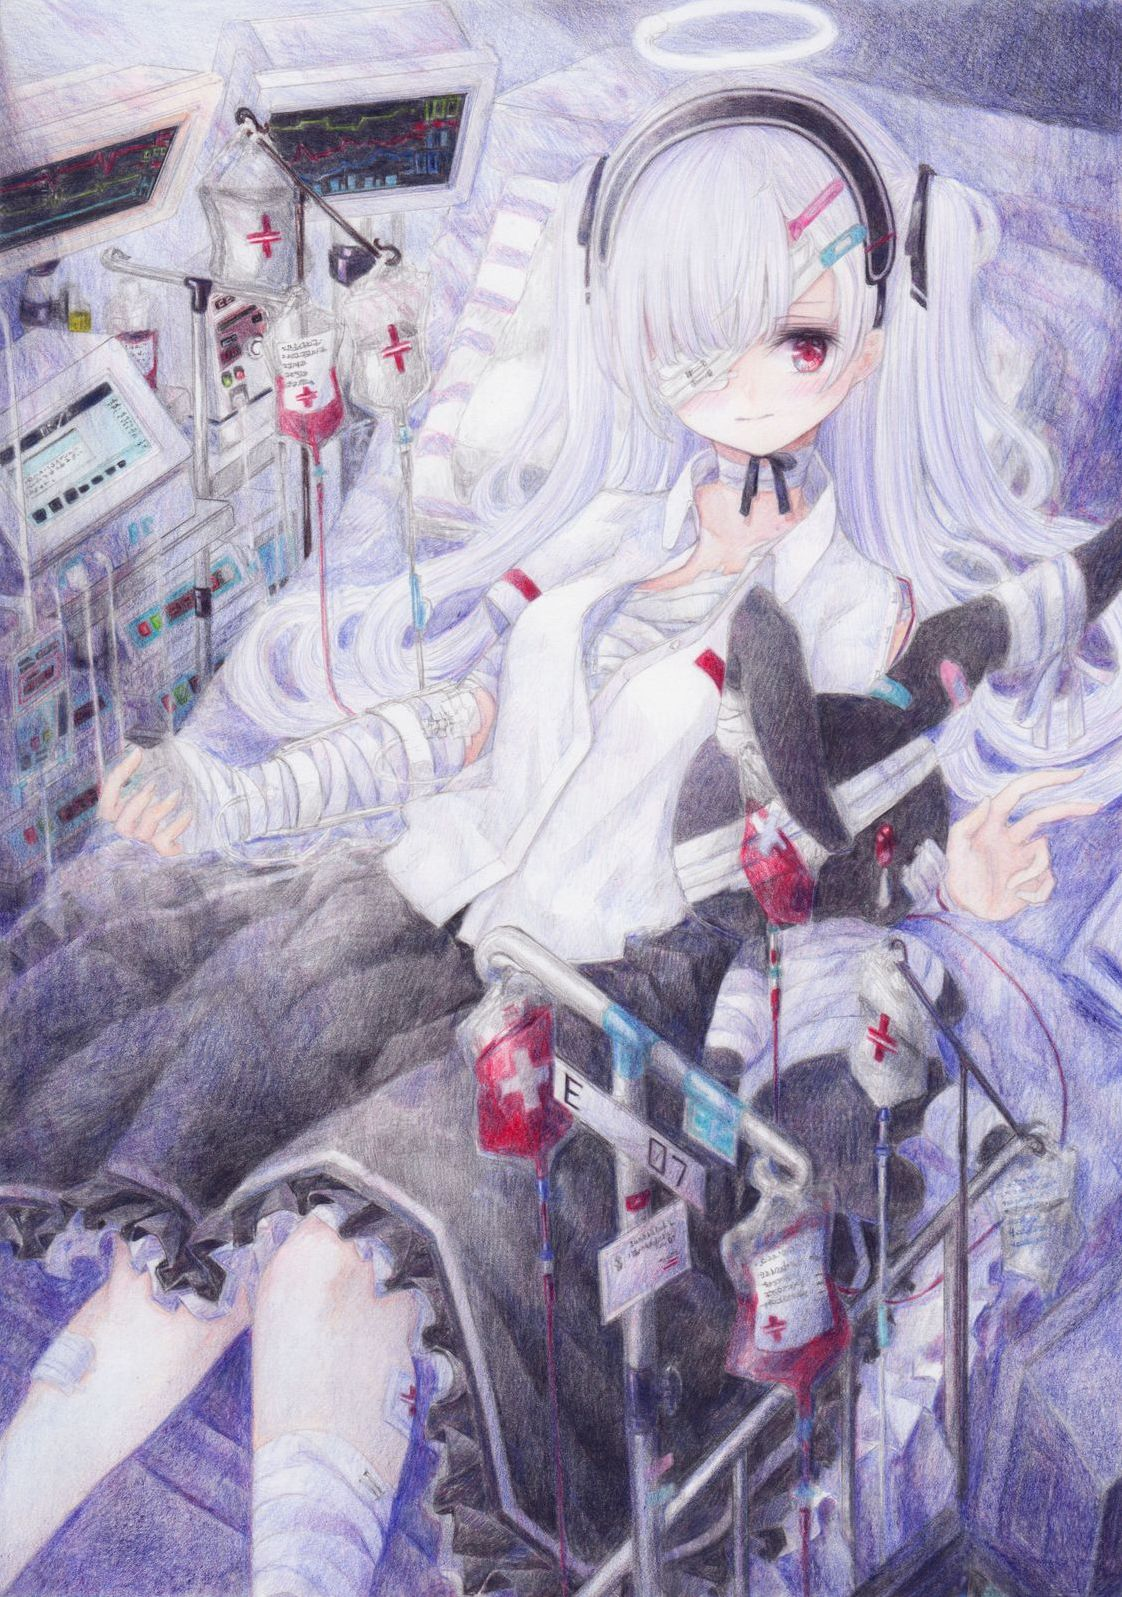 1girl angel bag bandages bed blood blood_bag blush breasts colored_pencil_(medium) darkkanan eyepatch graphite_(medium) hairband halo highres hospital hospital_bed intravenous_drip legs long_hair lying original pillow red_eyes small_breasts stuffed_animal stuffed_toy traditional_media twintails white_hair